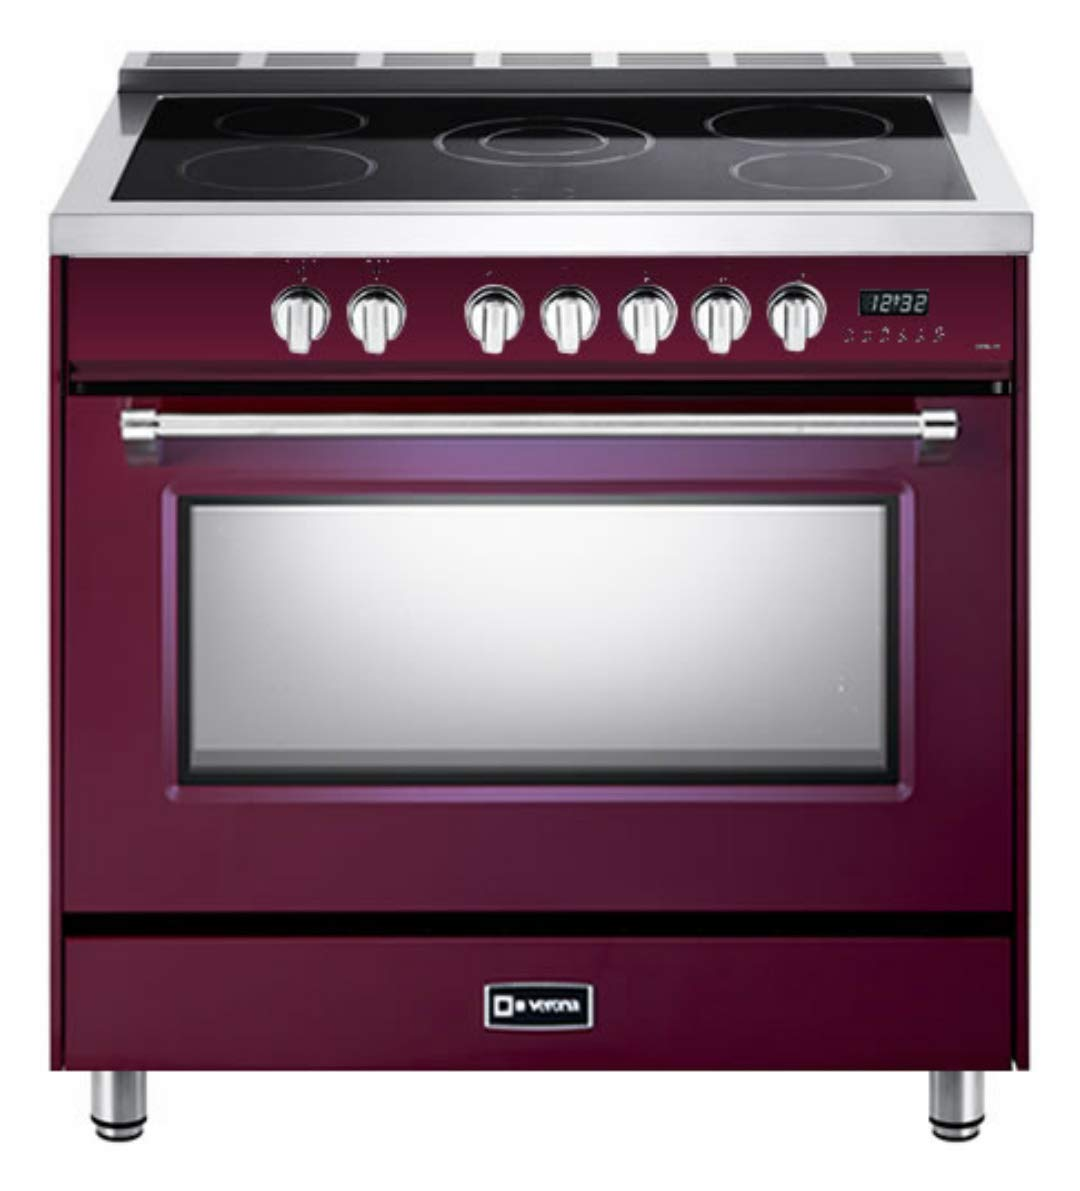 Verona Designer Series VDFSEE365BU 36 Inch 5.0 Cu. Ft Electric Range Oven 5 Burners Dual Center Element Smoothtop Black Ceramic Cooktop Convection Burgundy